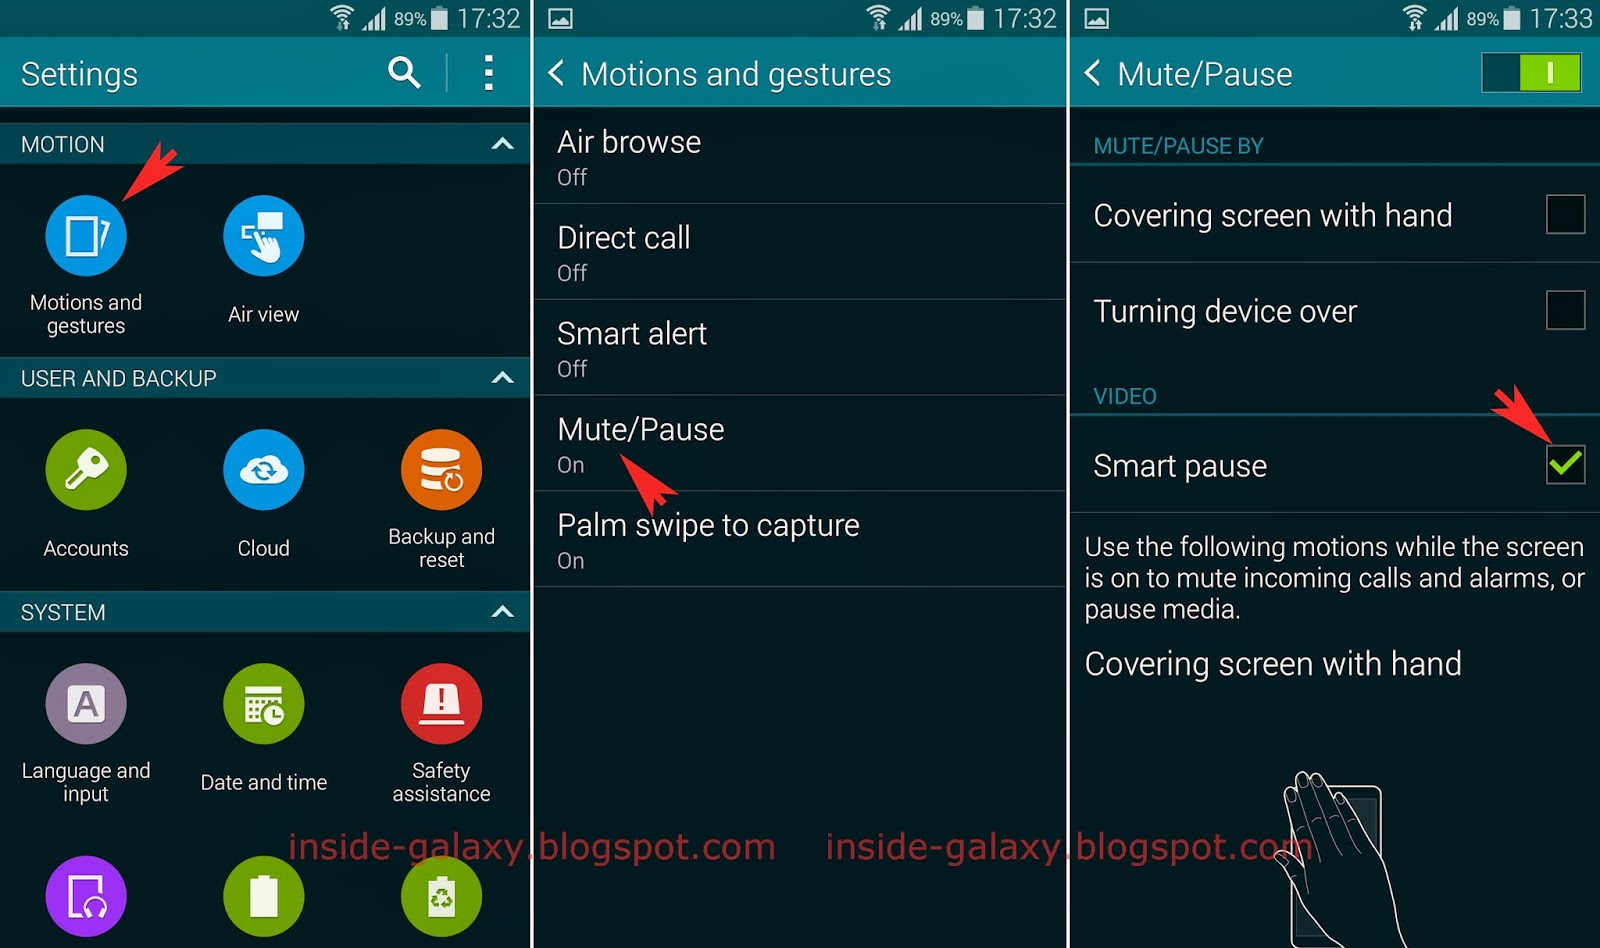 Samsung Galaxy S5: How to Enable and Use Smart Pause in